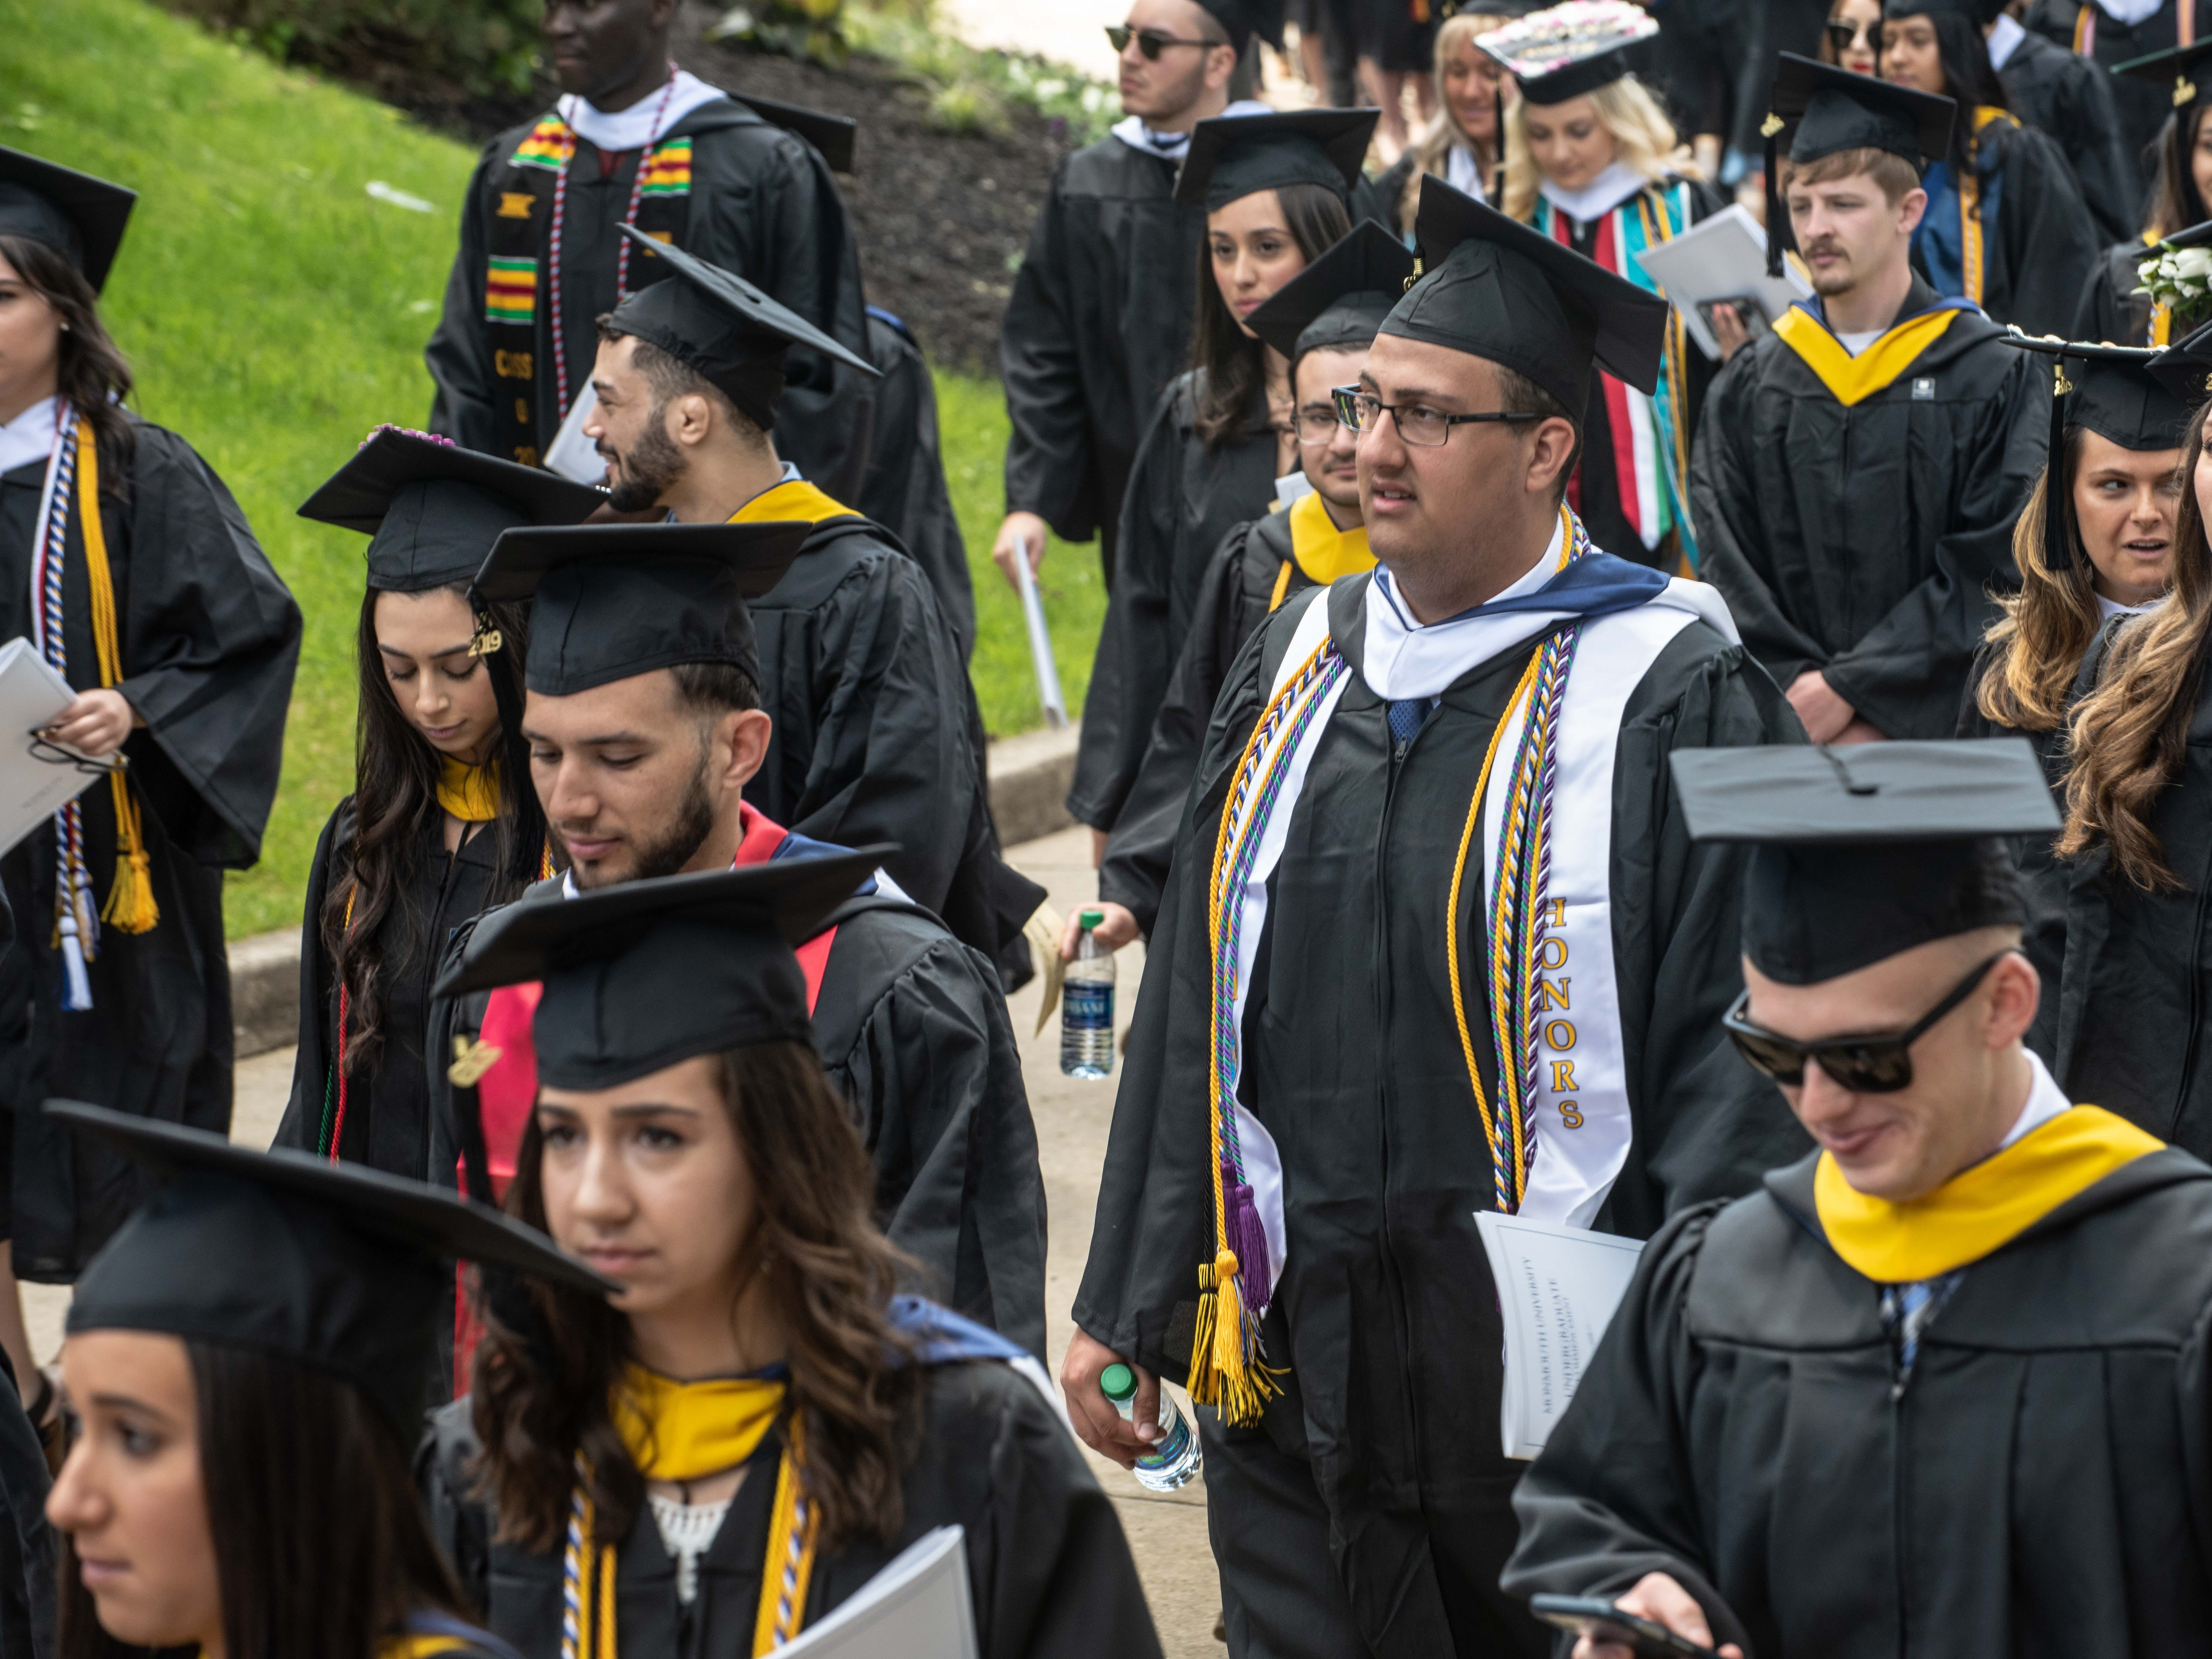 Monmouth University undergraduate commencement for the class of 2019 at PNC Bank Arts Center, Holmdel, on May 15, 2019.